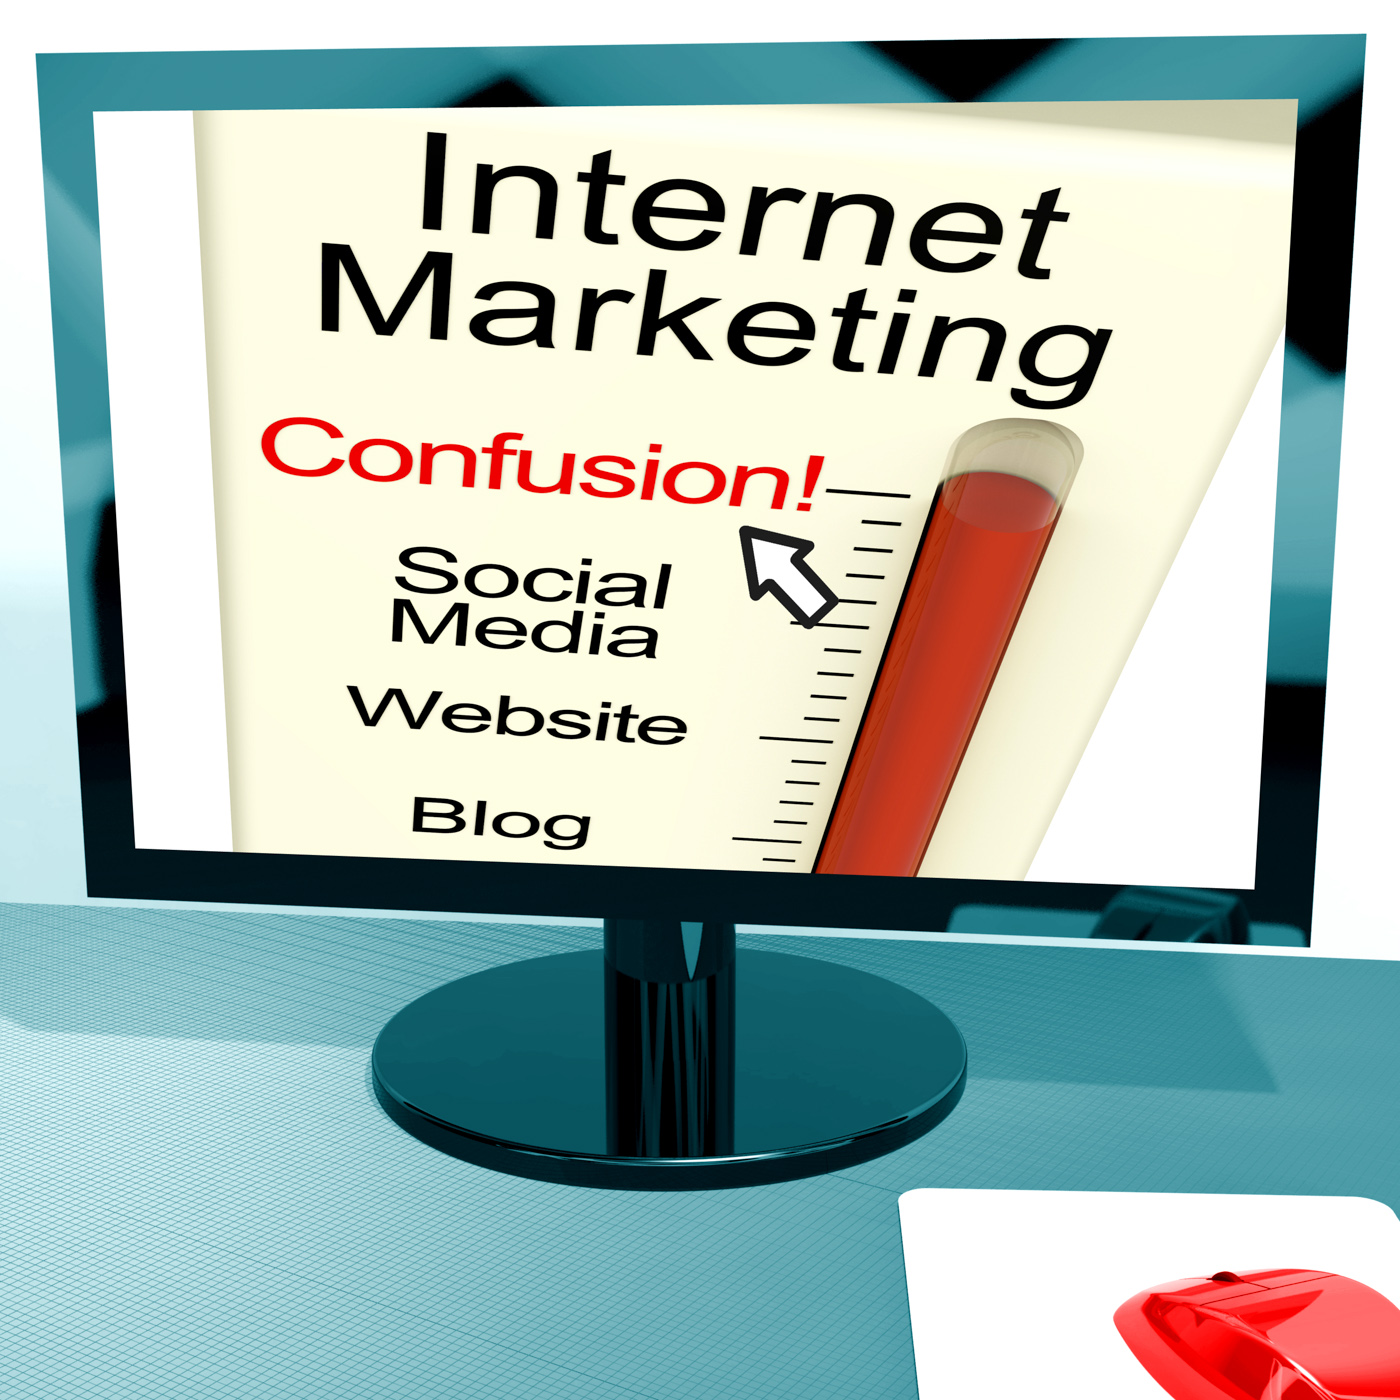 Internet marketing confusion shows online seo strategy photo